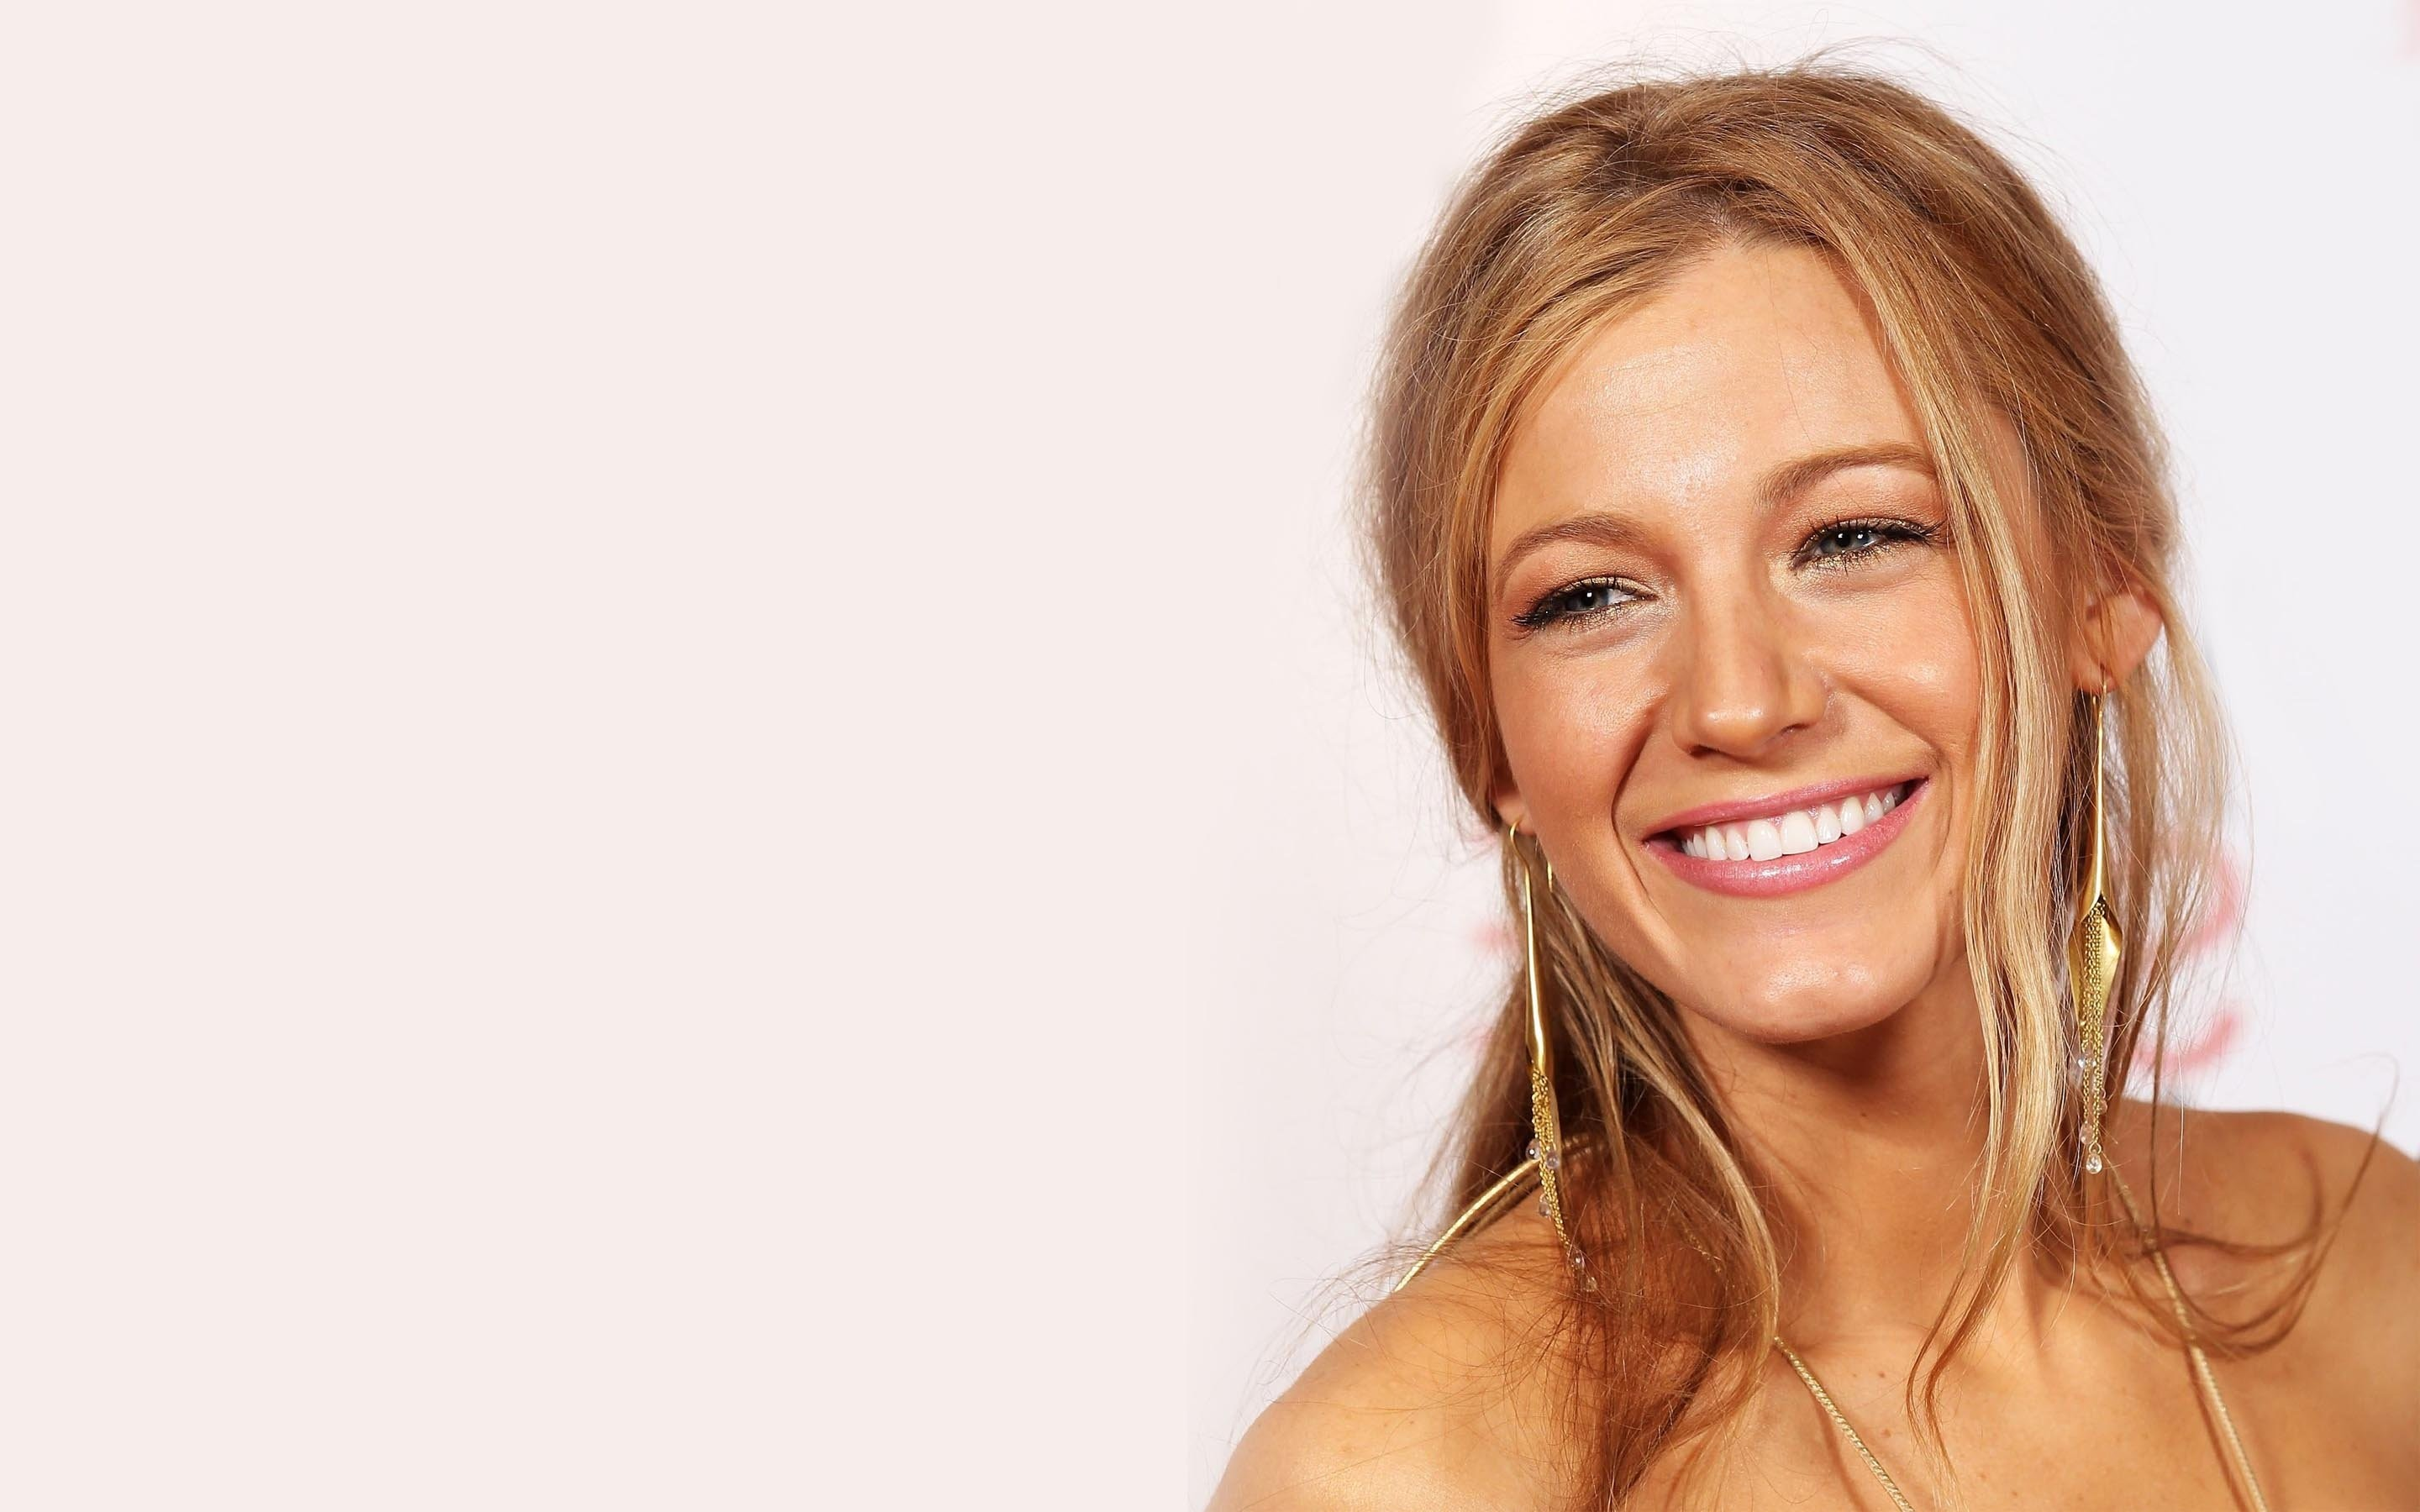 2880x1800 Blake Lively Actress Hot American